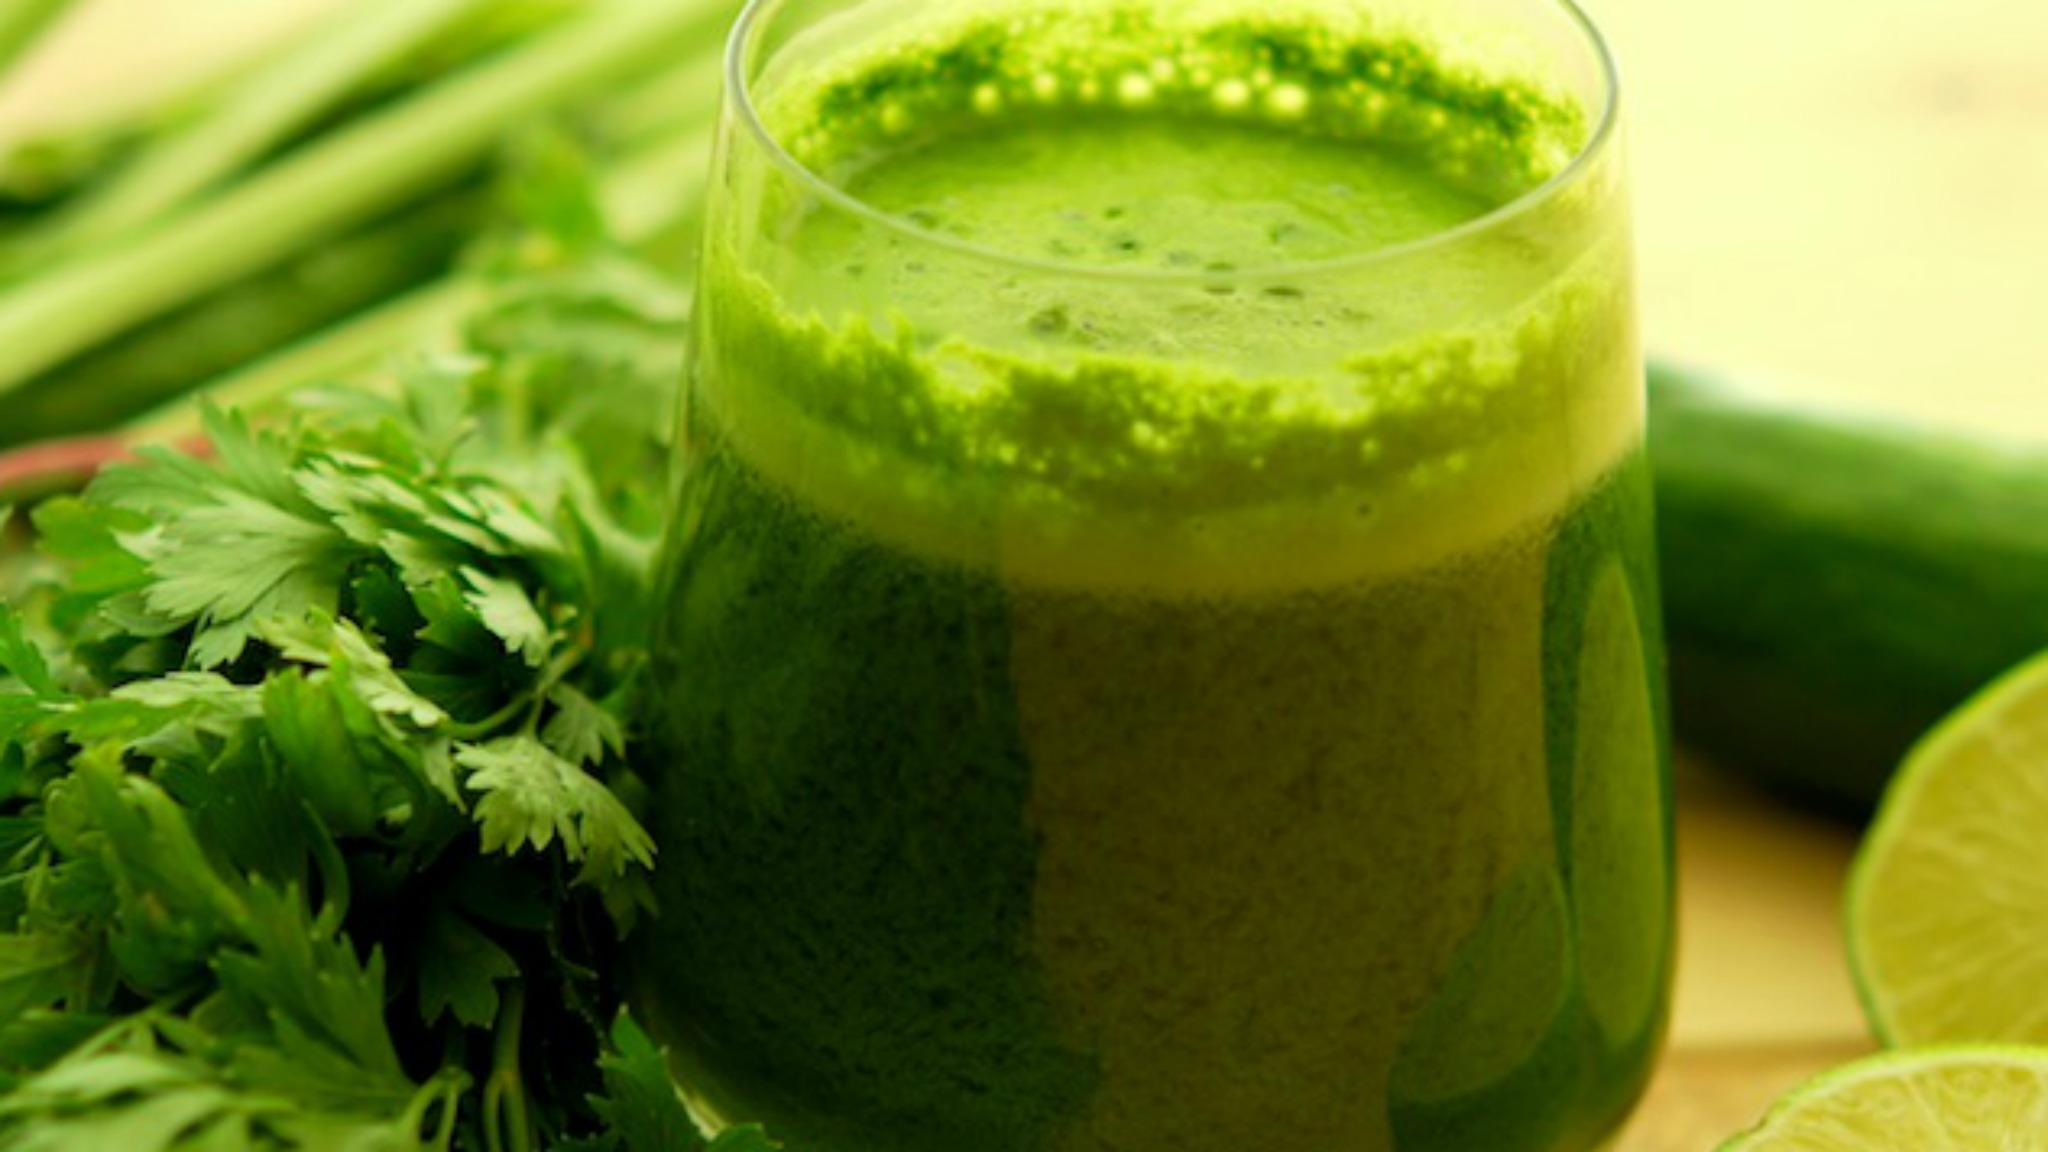 Drink green juice. Learn our recipe. Heal. We target cancer, heal cancer naturally without harm to the body, and teach people who to stop making cancer so that it does not return. If you or a loved one has cancer, please call an oasis of healing for